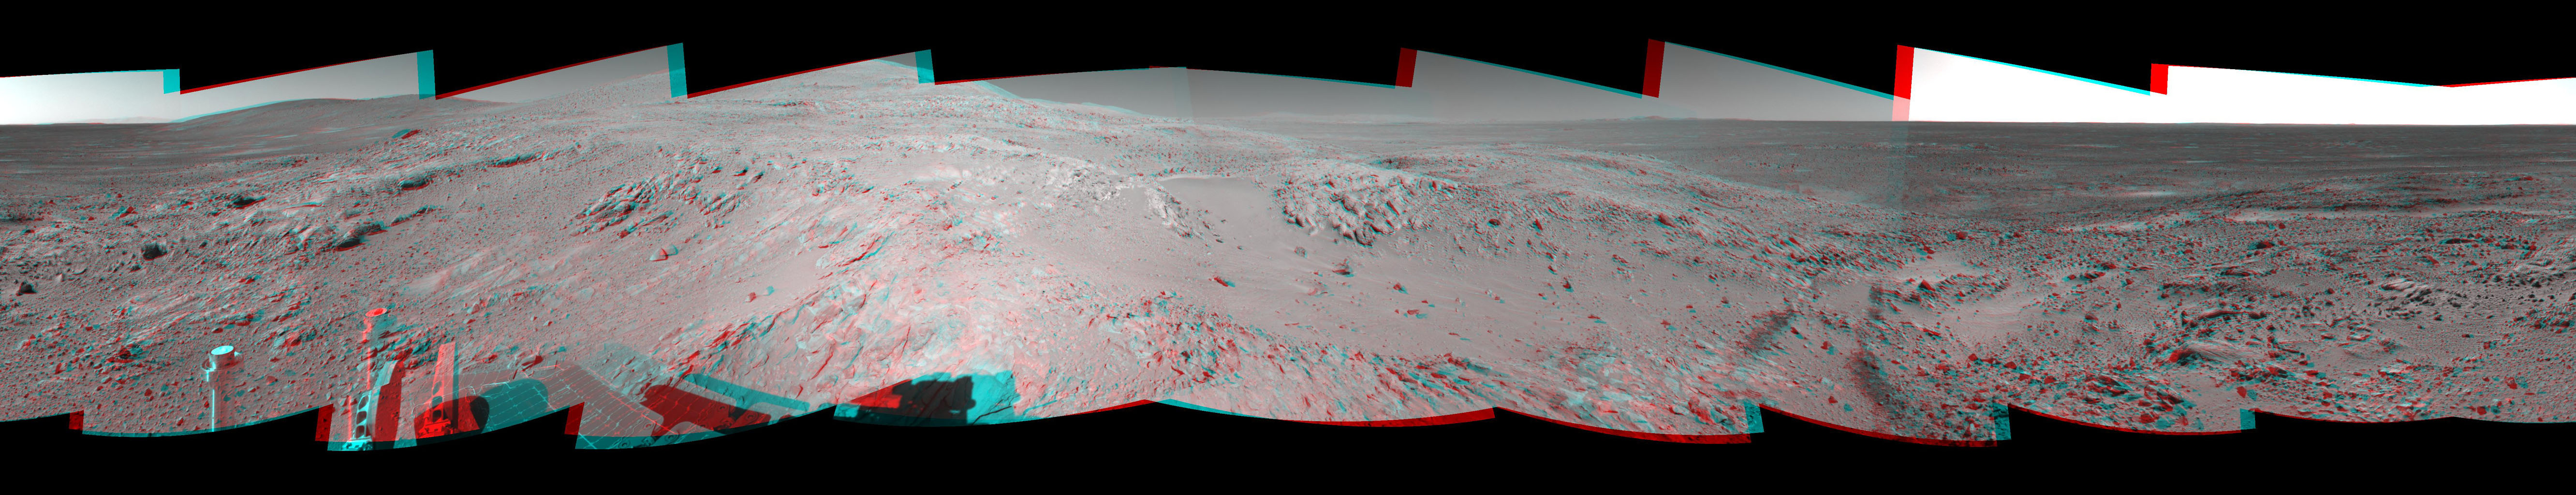 This 360-degree stereo panorama shows the terrain surrounding NASA's Mars Exploration Rover Spirit on Nov. 11, 2004. At that point, Spirit was climbing the 'West Spur' of the 'Columbia Hills.' 3D glasses are necessary to view this image.